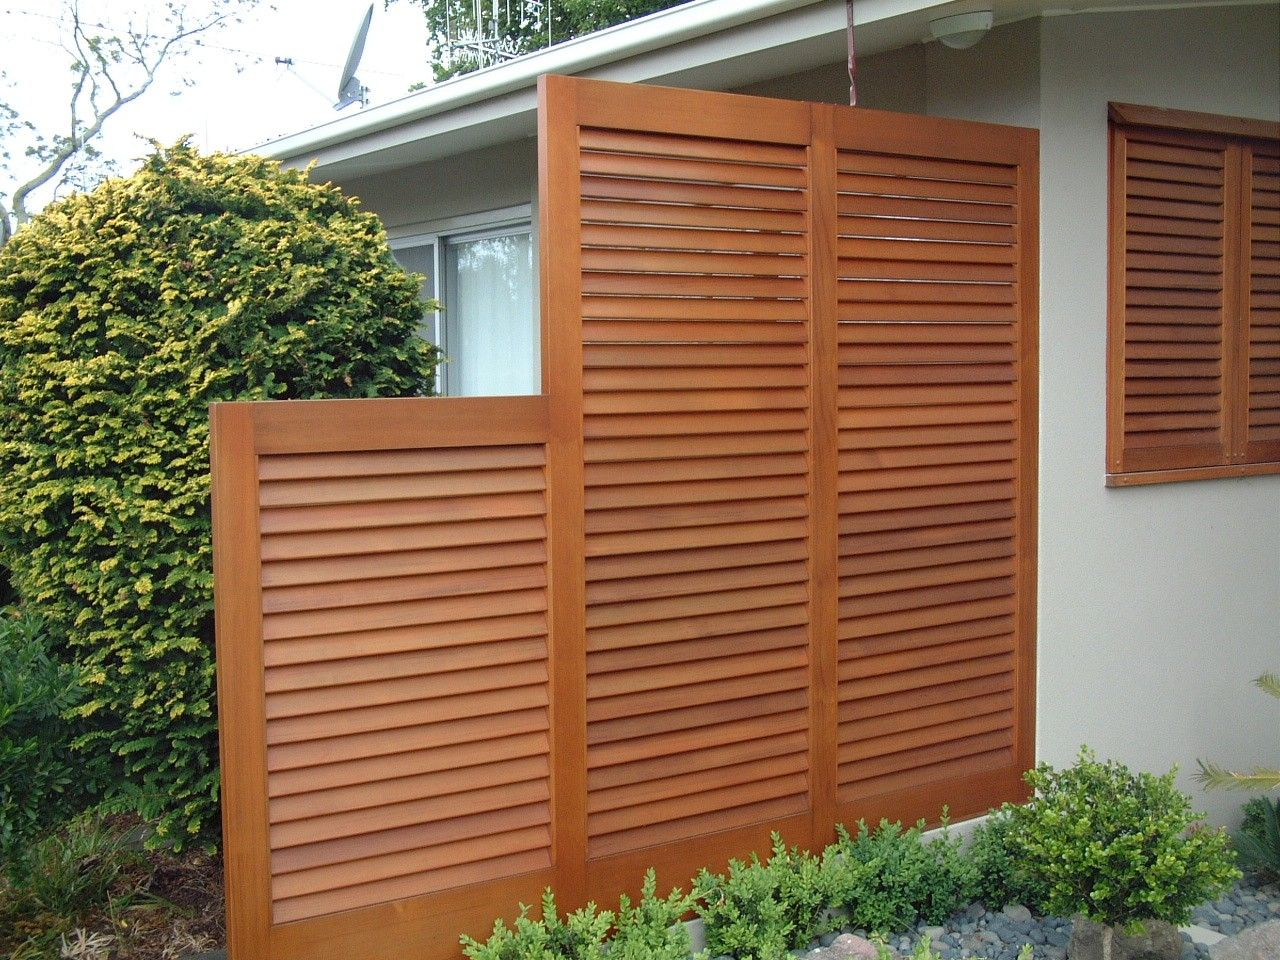 Beautiful exterior outdoor privacy screens shop at for Outdoor privacy screen ideas